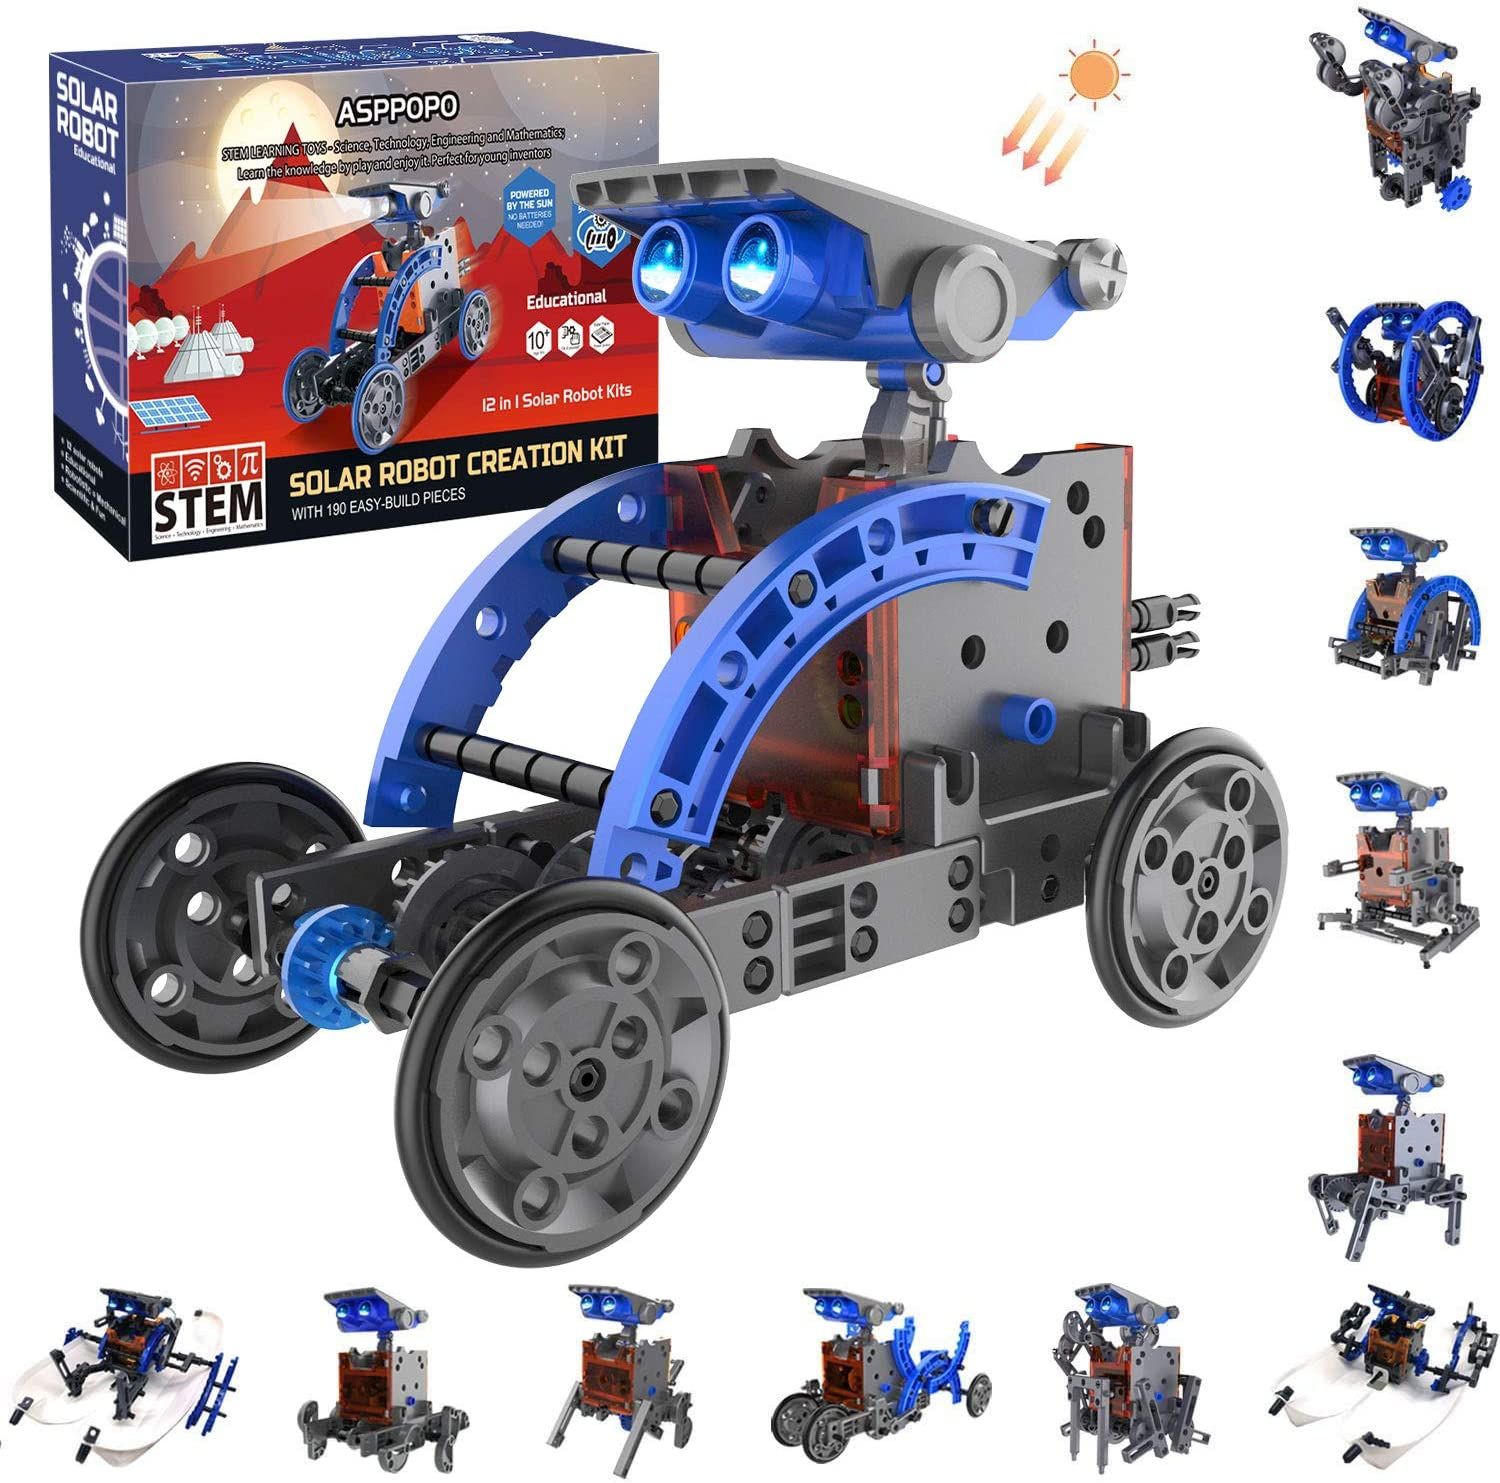 ASPPOPO STEM Solar Robot Kit 12 in 1 Educational Learning Science Building Toys for Kids Age 8+ Years Old Boys and Girls